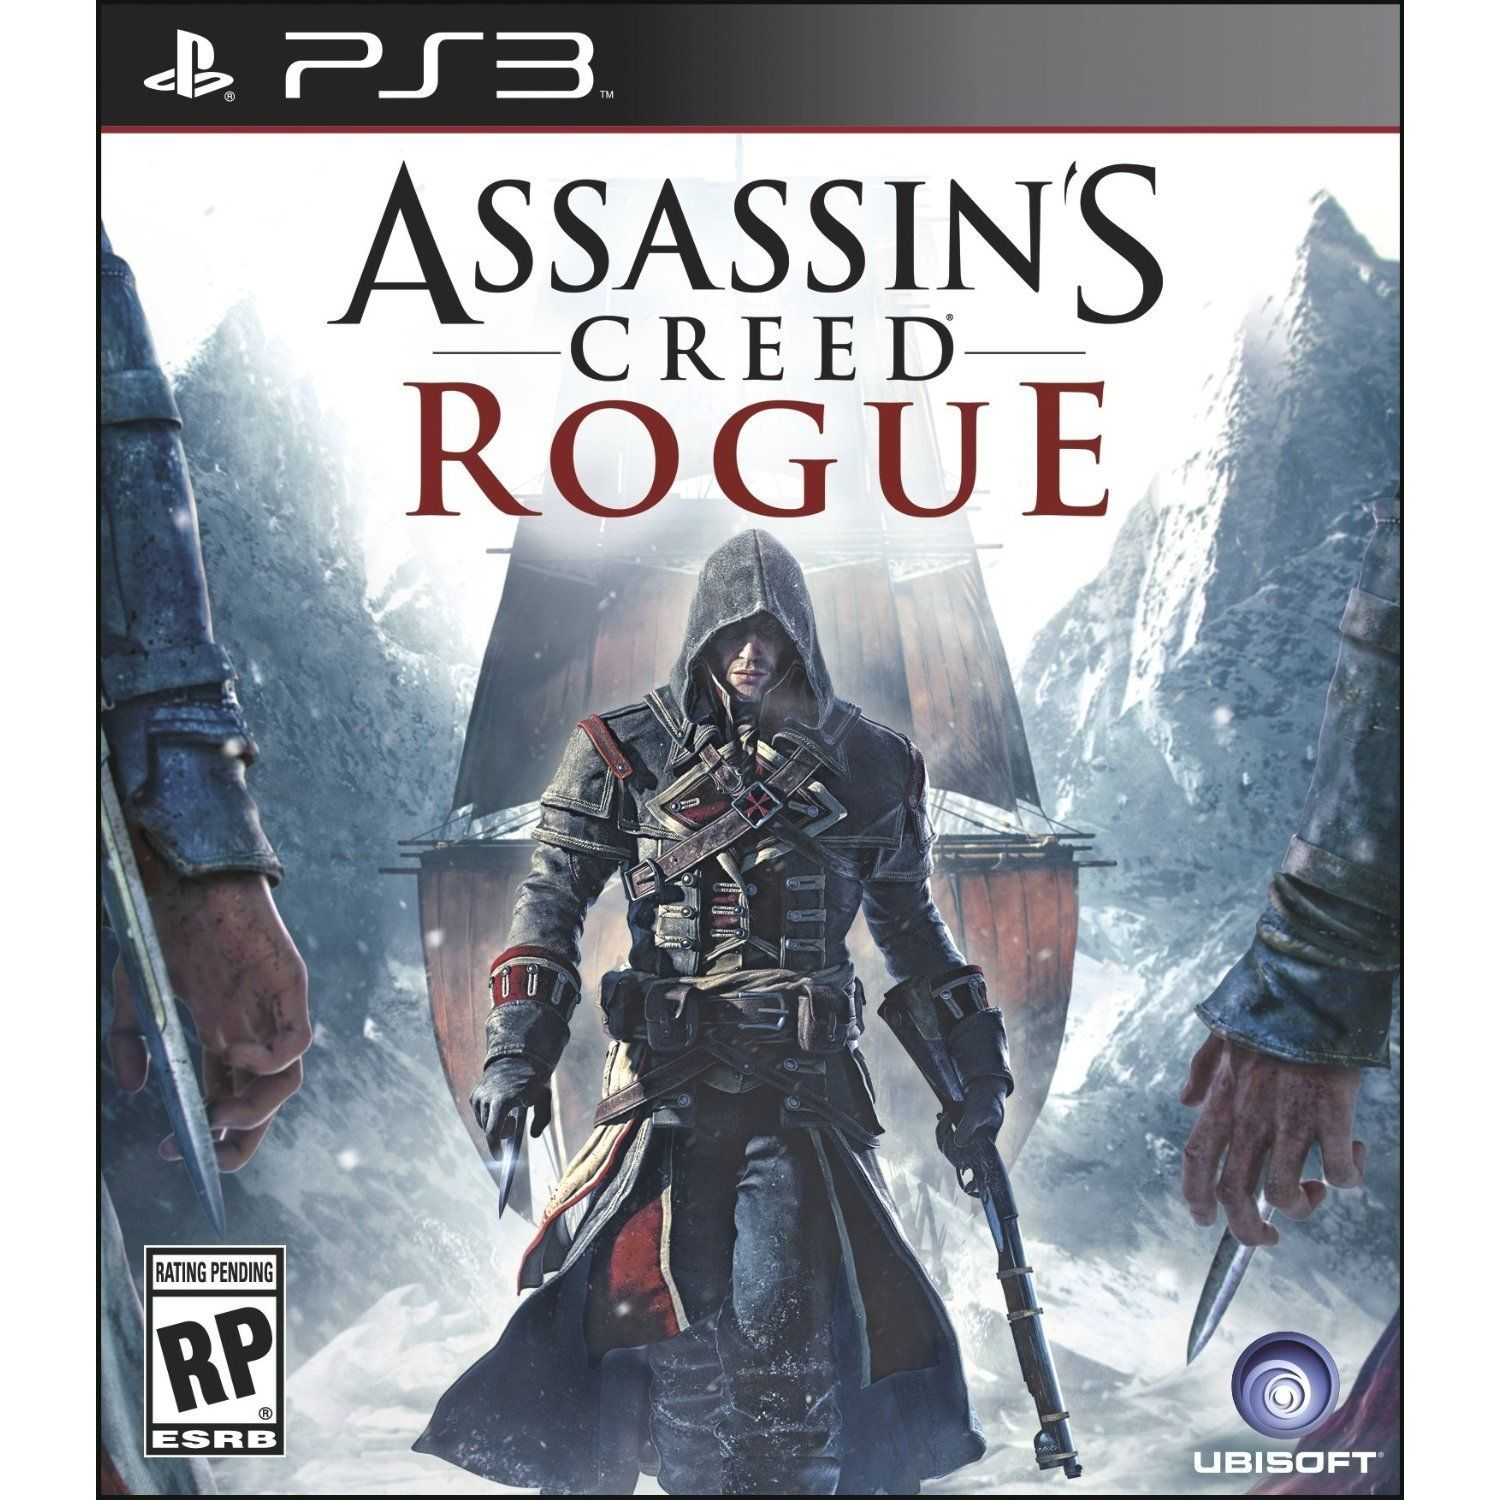 Ps3 Assassin S Creed Rogue With Images Assassins Creed Rogue